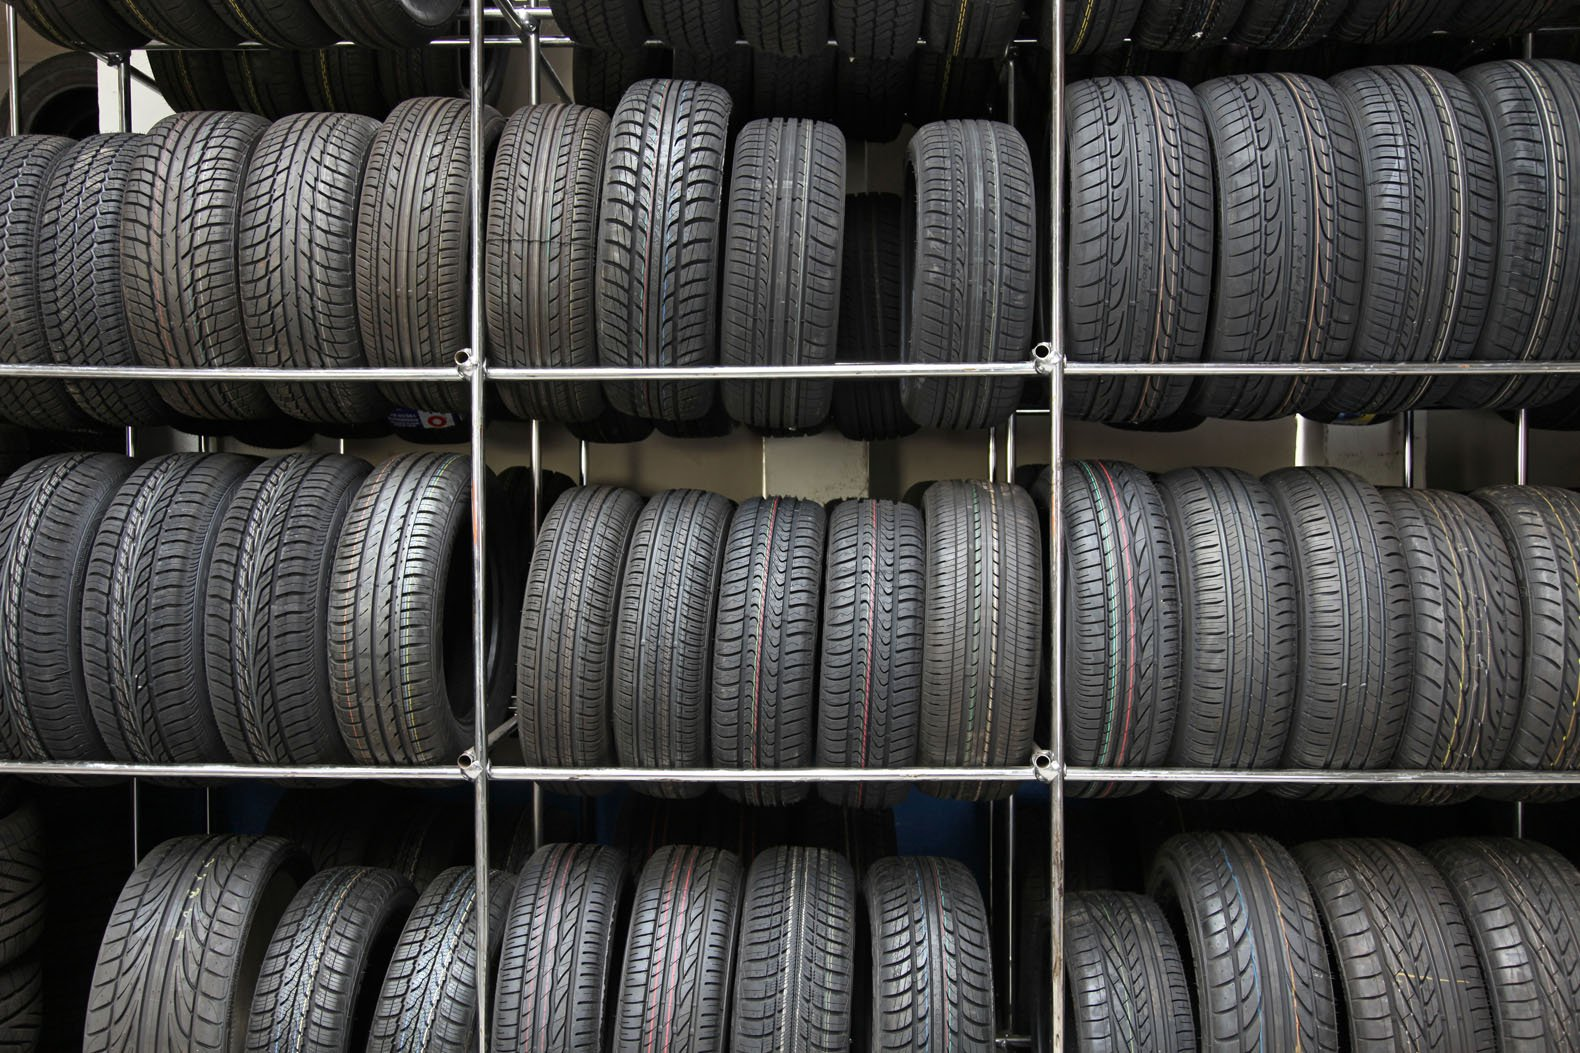 Tyre supply